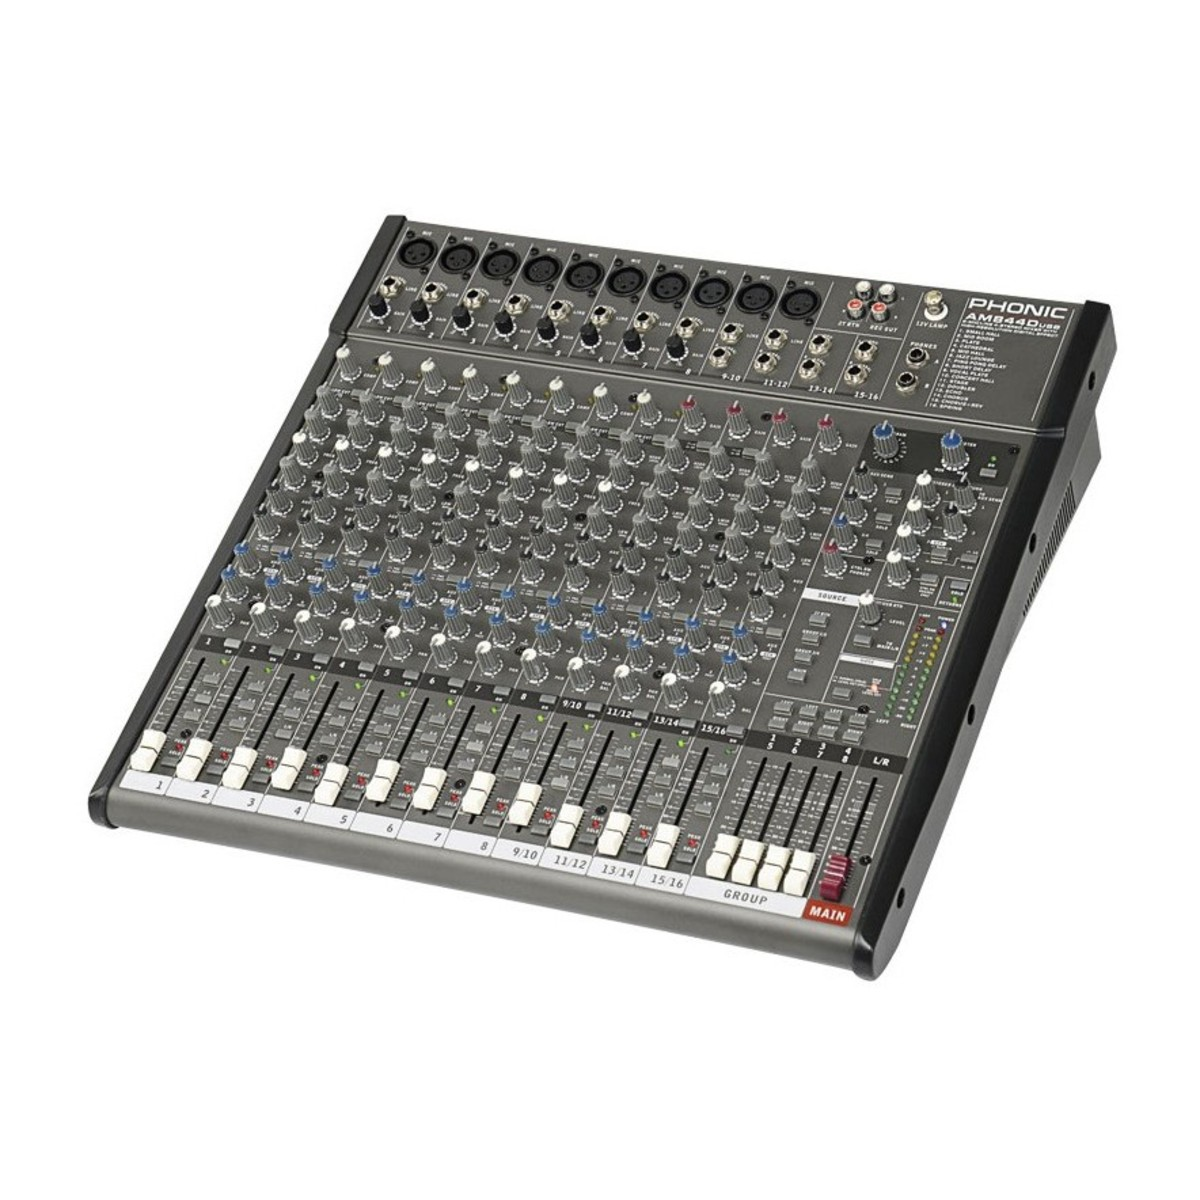 Phonic am844d table de mixage usb gear4music - Table de mixage yamaha usb ...